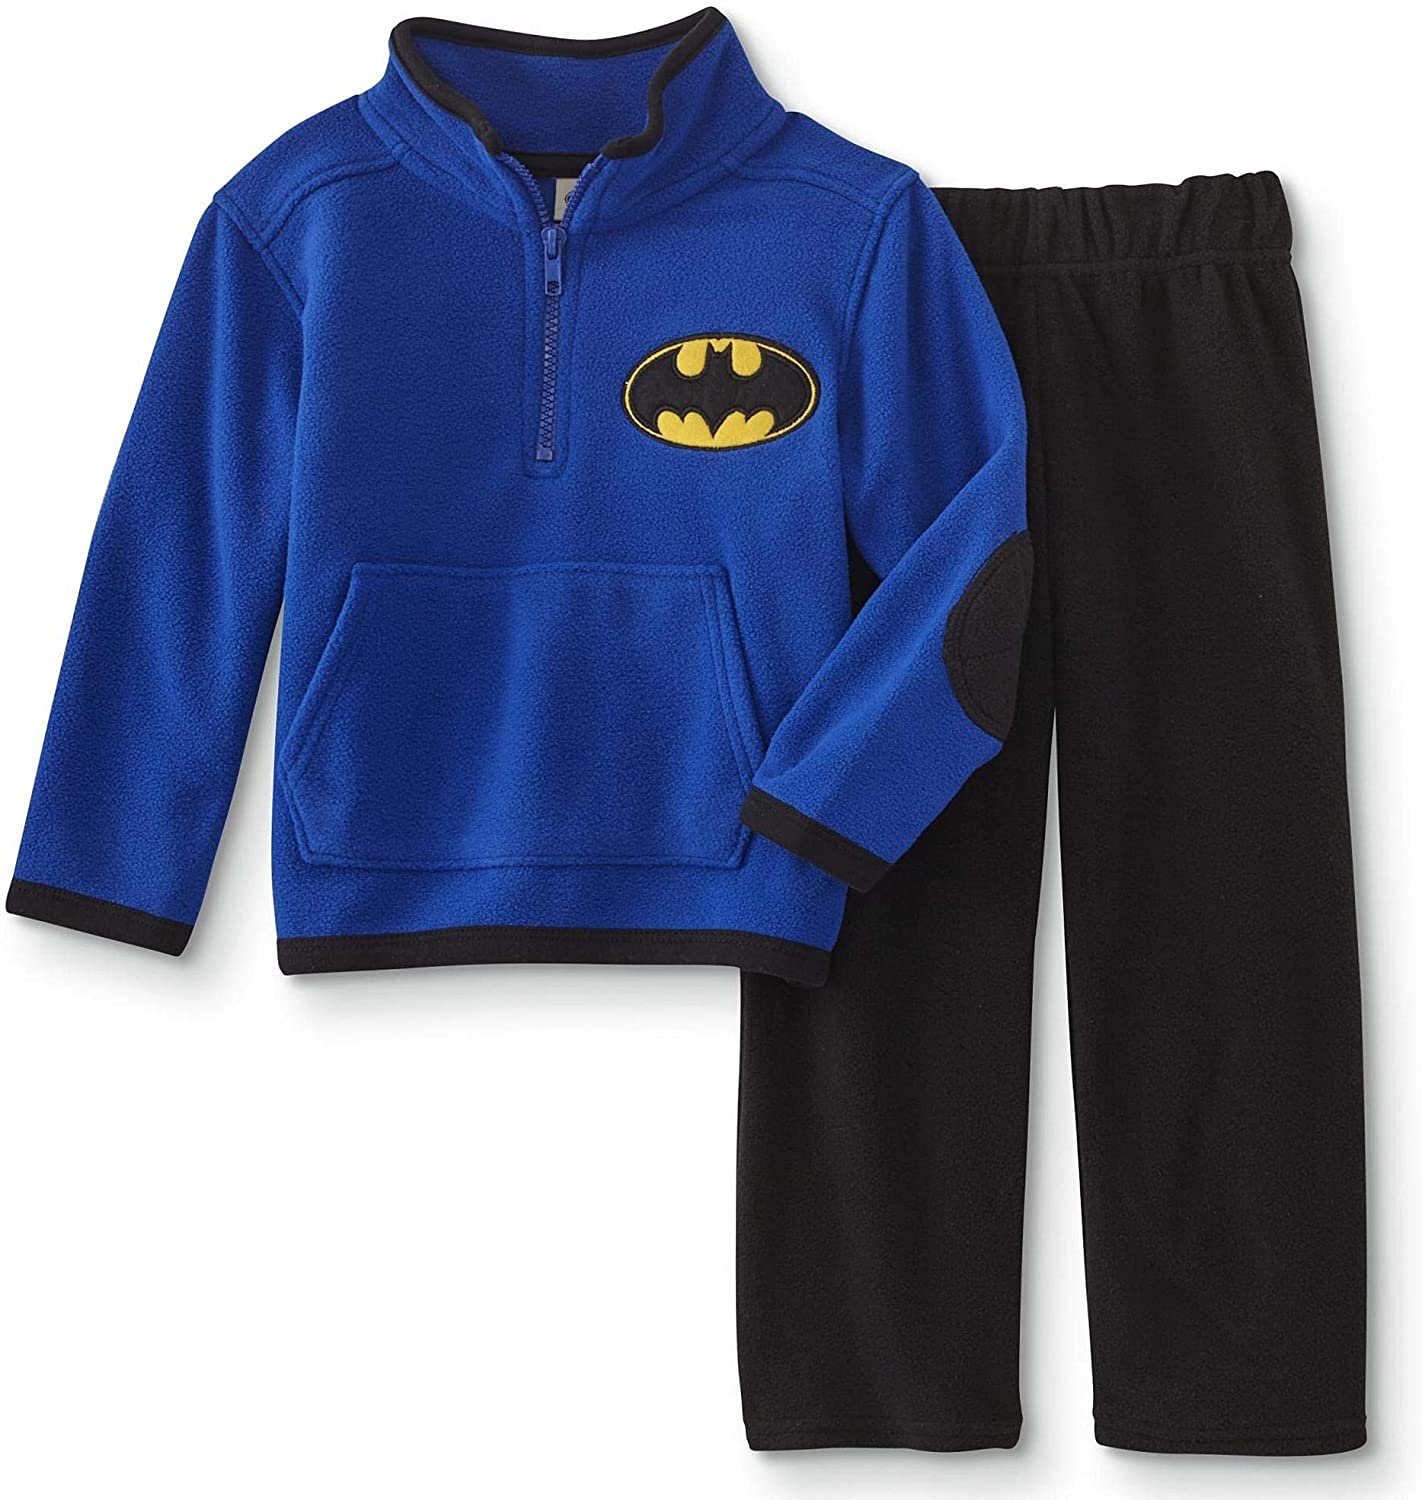 DC Comics Boys' 2 Piece Batman Polar Fleece Set